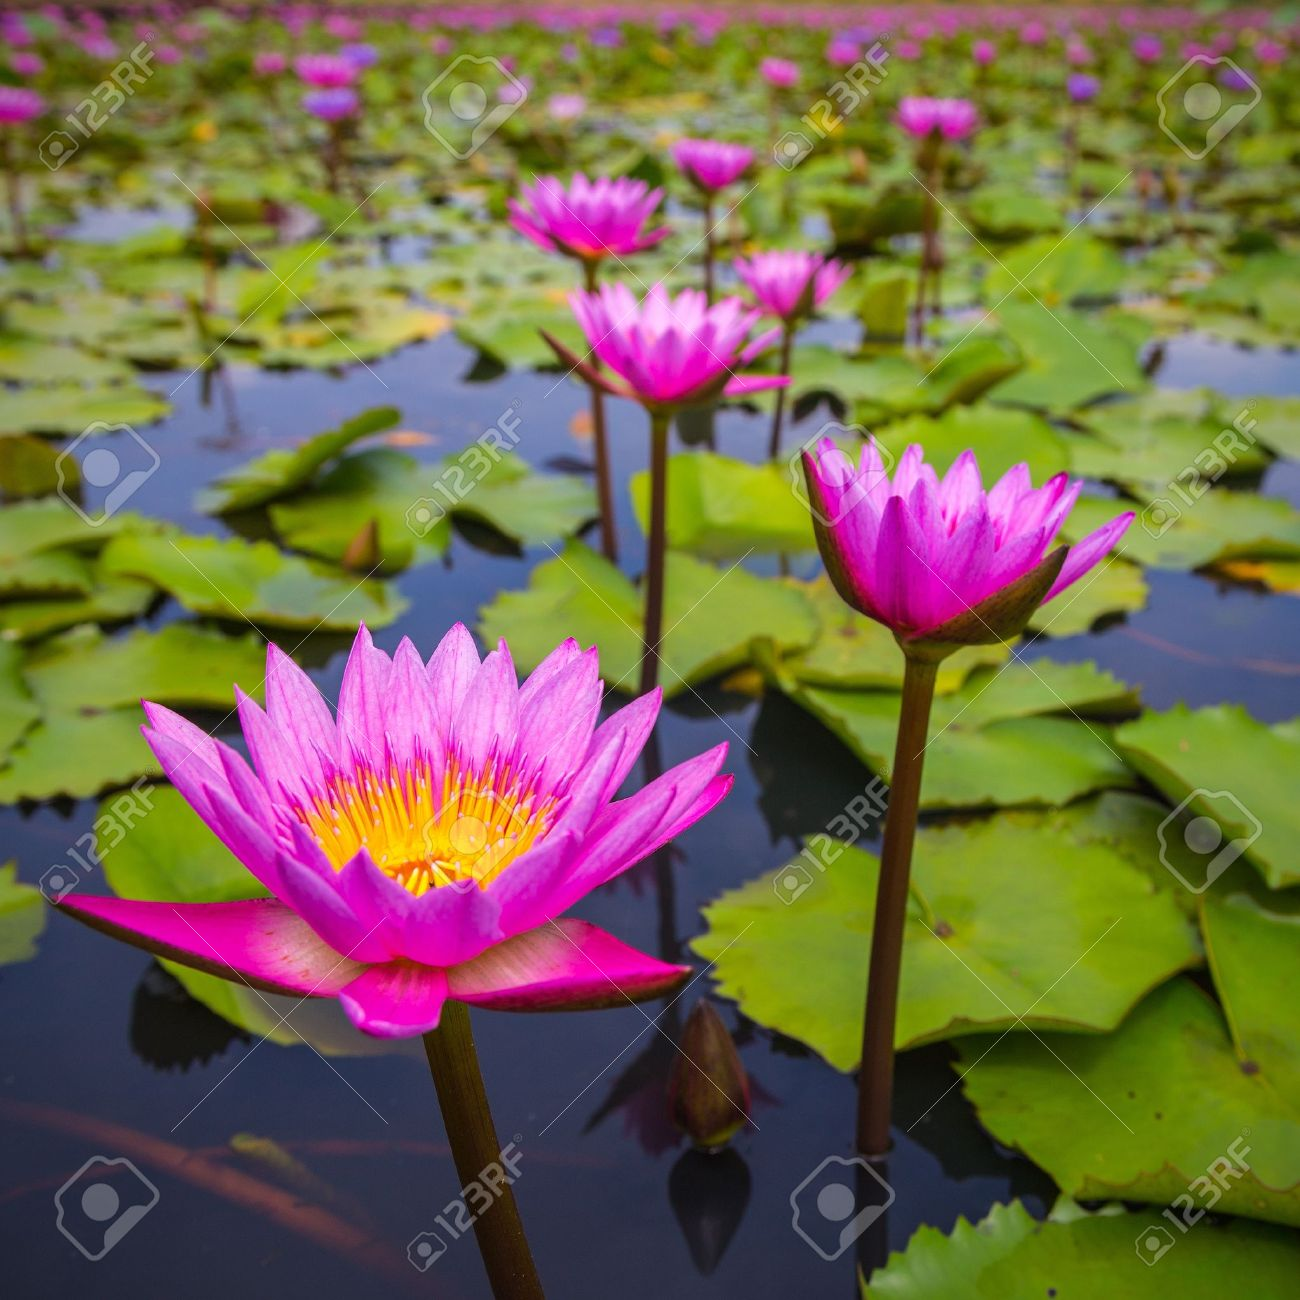 beauty pink lotus flower stock photo, picture and royalty free, Beautiful flower